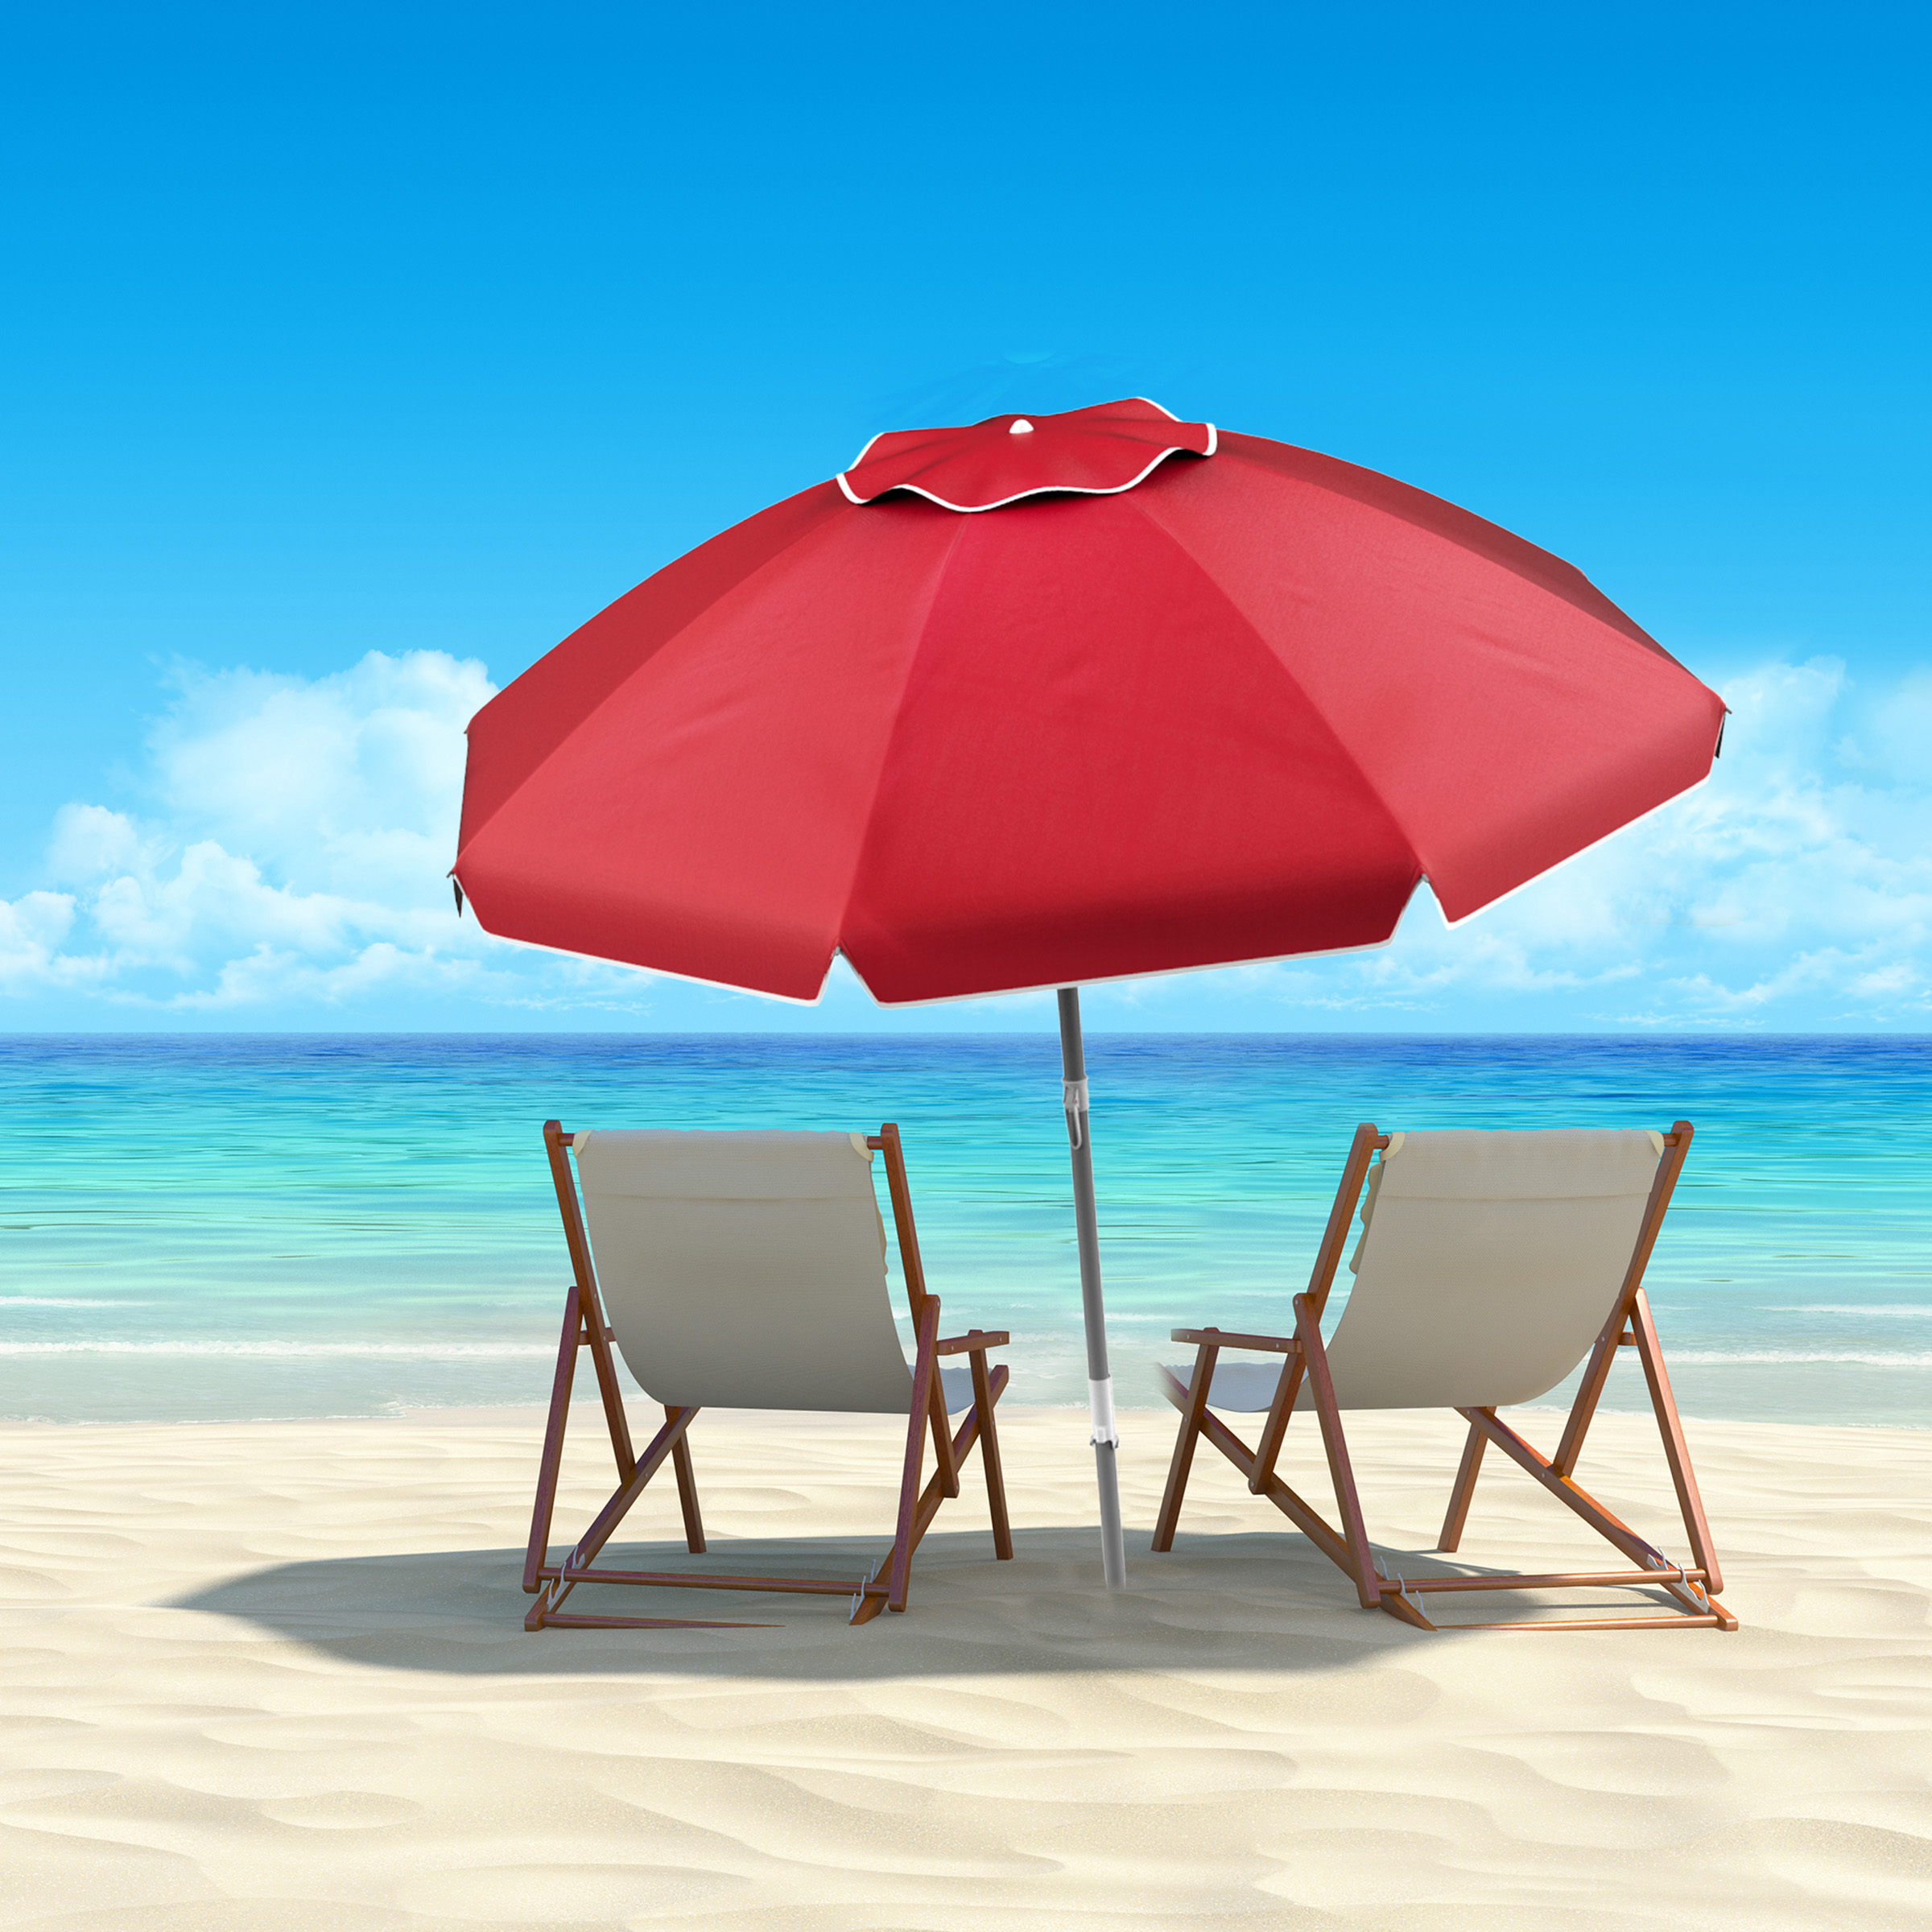 Fashionable Tilt Beach Umbrellas Intended For Beach Umbrella With 360 Degree Tilt Portable Outdoor Sun Shade Canopy With Uv Protection, Sand Anchor, Carrying Casepure Garden (7 Ft, Blue) (View 1 of 20)